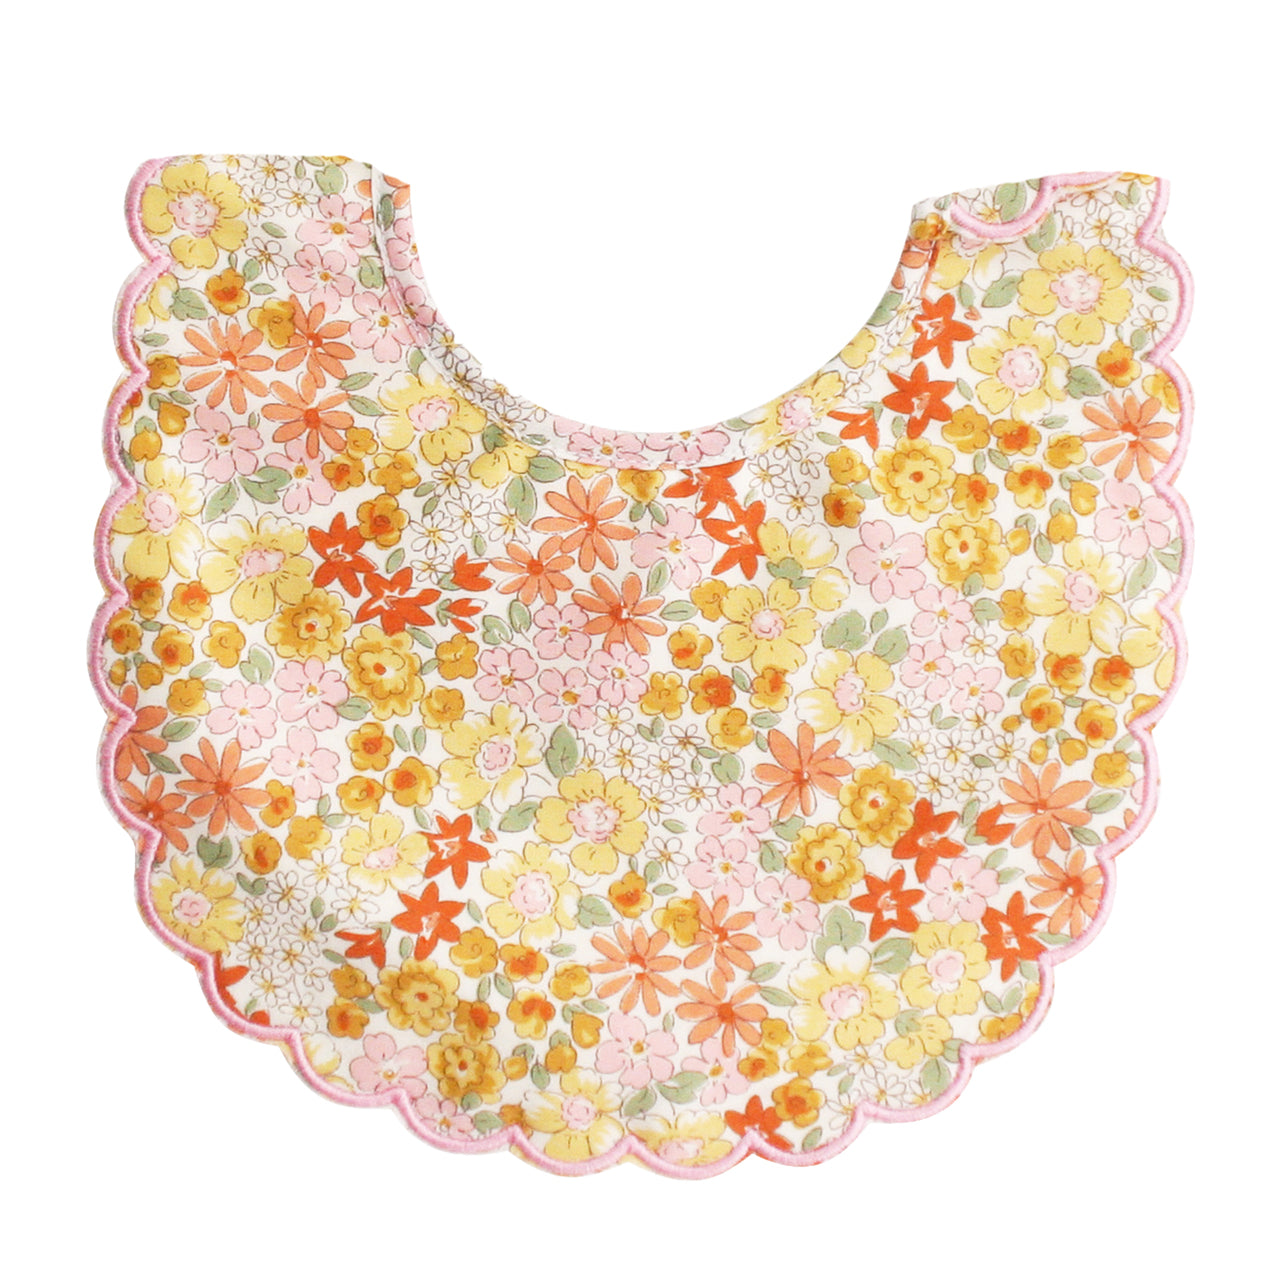 Scallop Edge Bib - Sweet Marigold